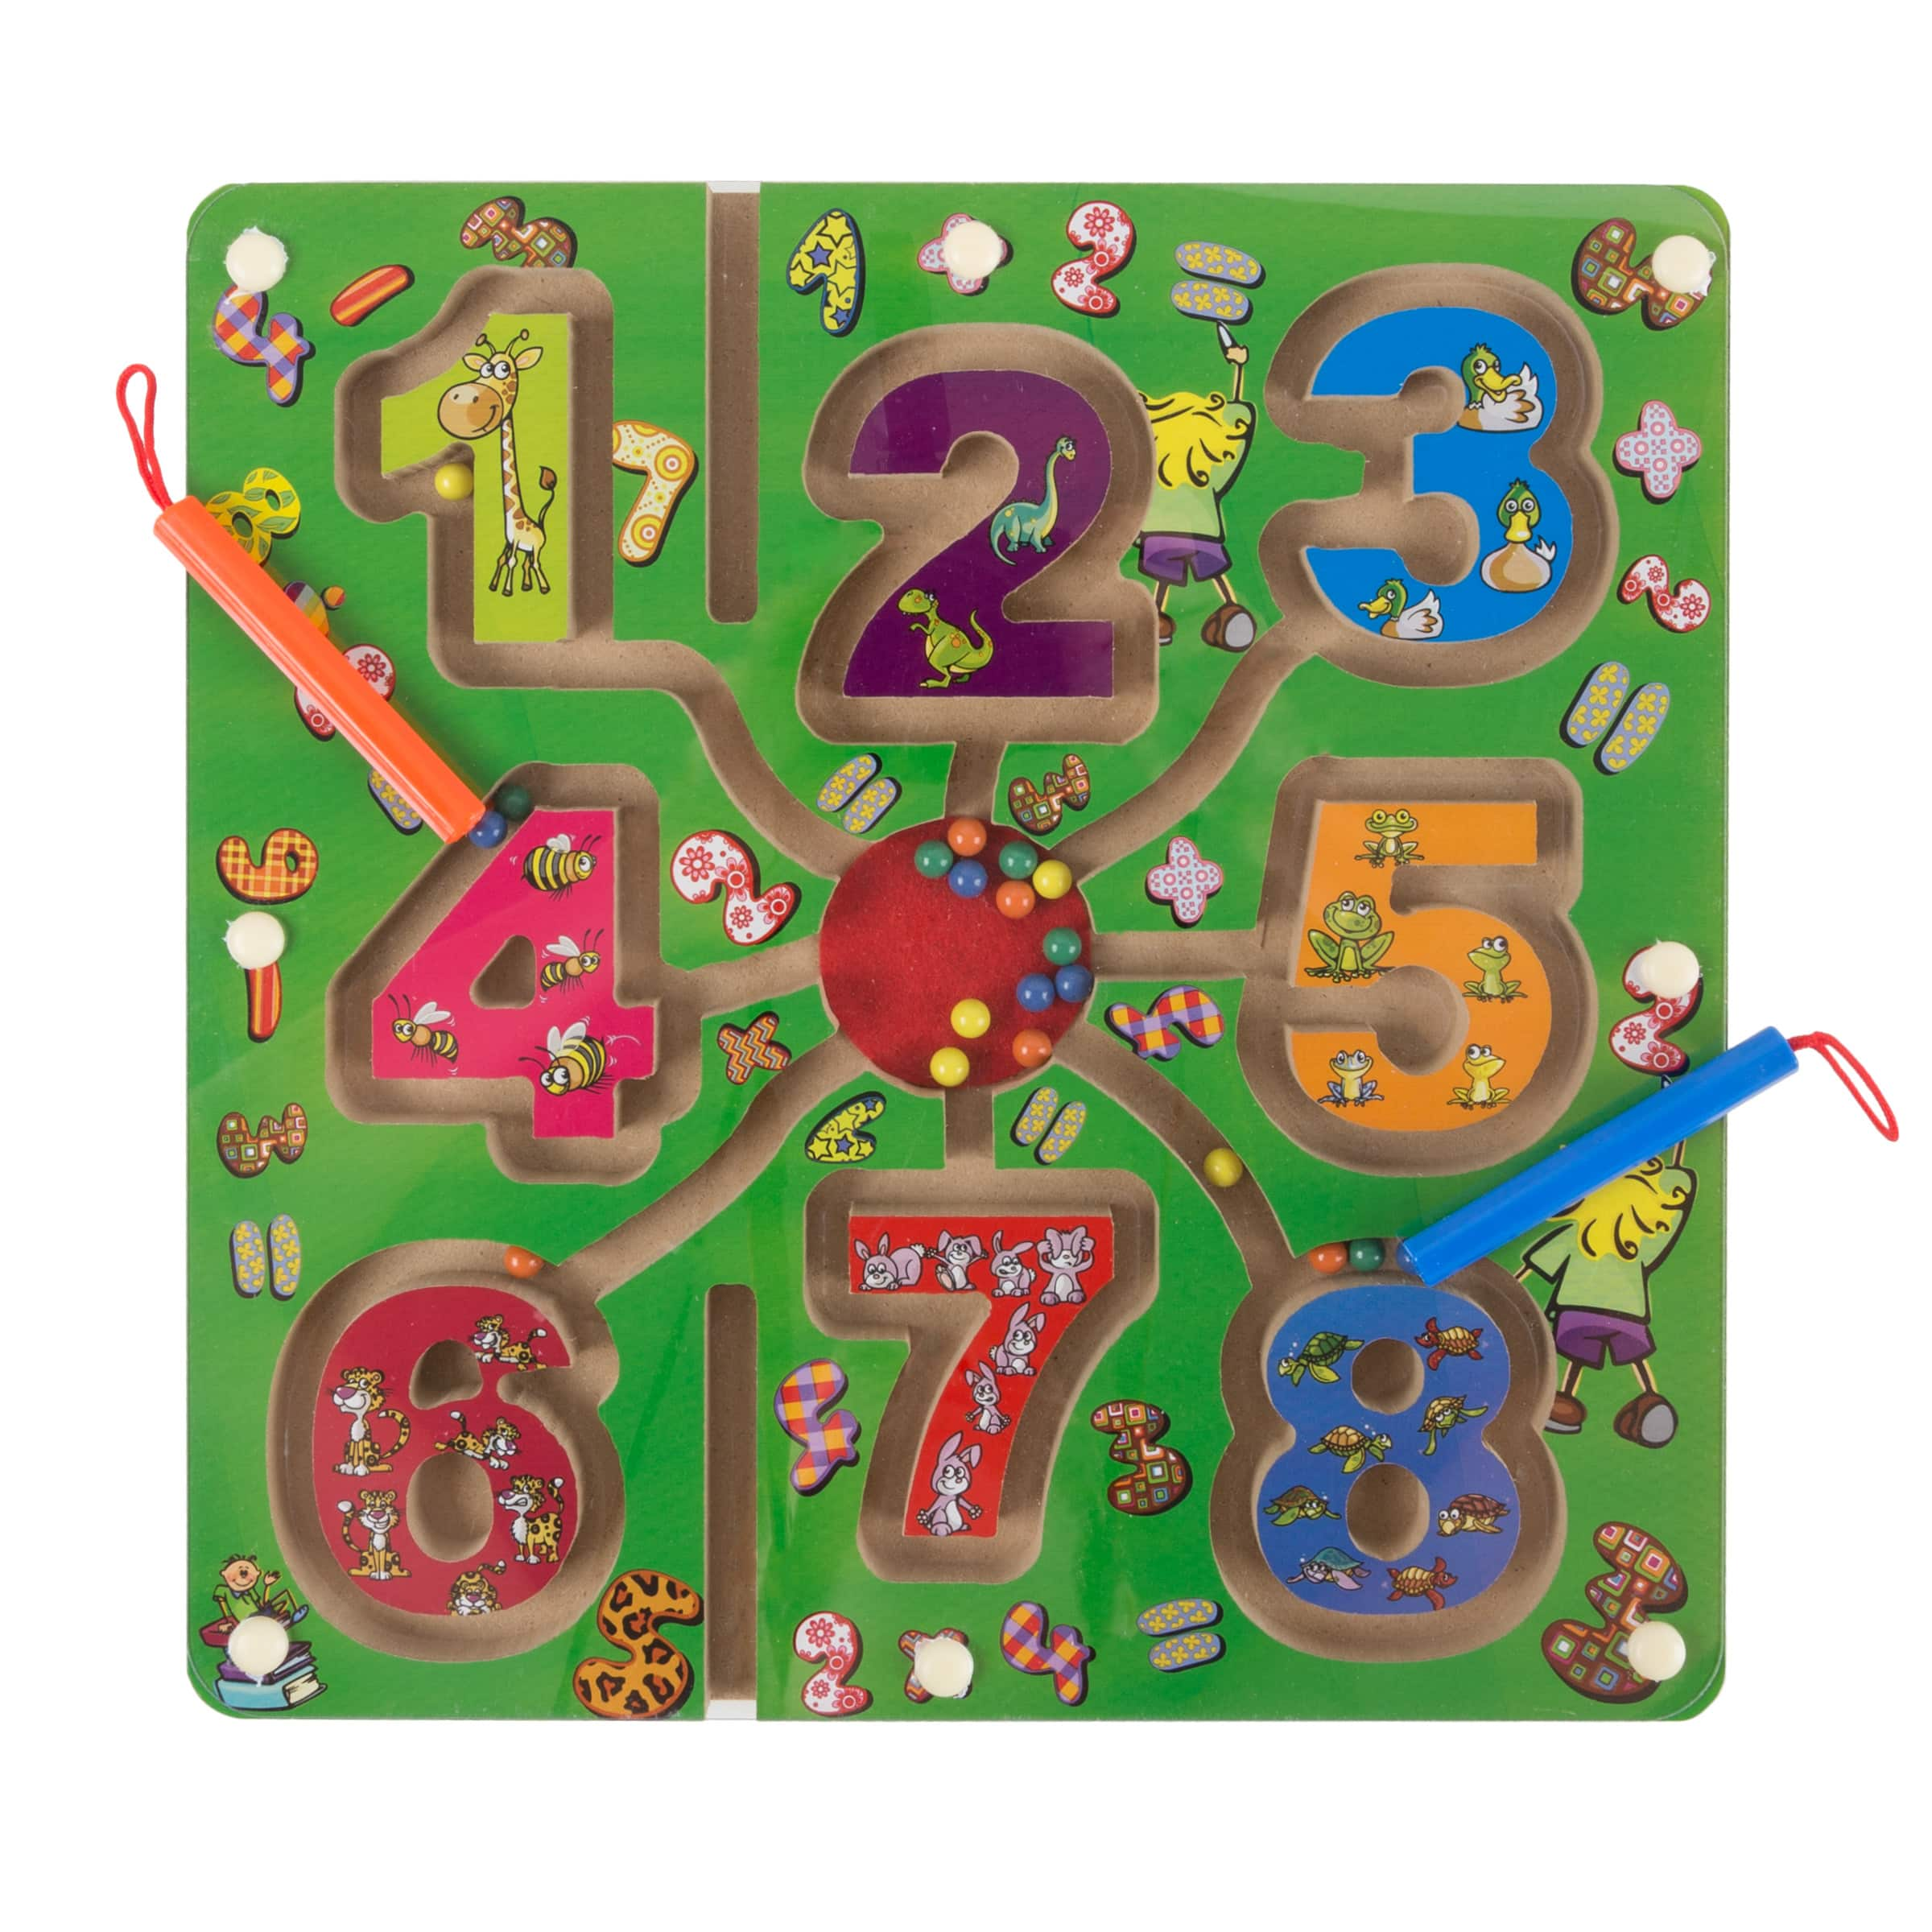 Wooden Number Maze-Colorful Zoo Animal Toy with 2 Magnet Pens-Activity Board Educational STEM Learning Toy for Preschool Boys and Girls $7.5